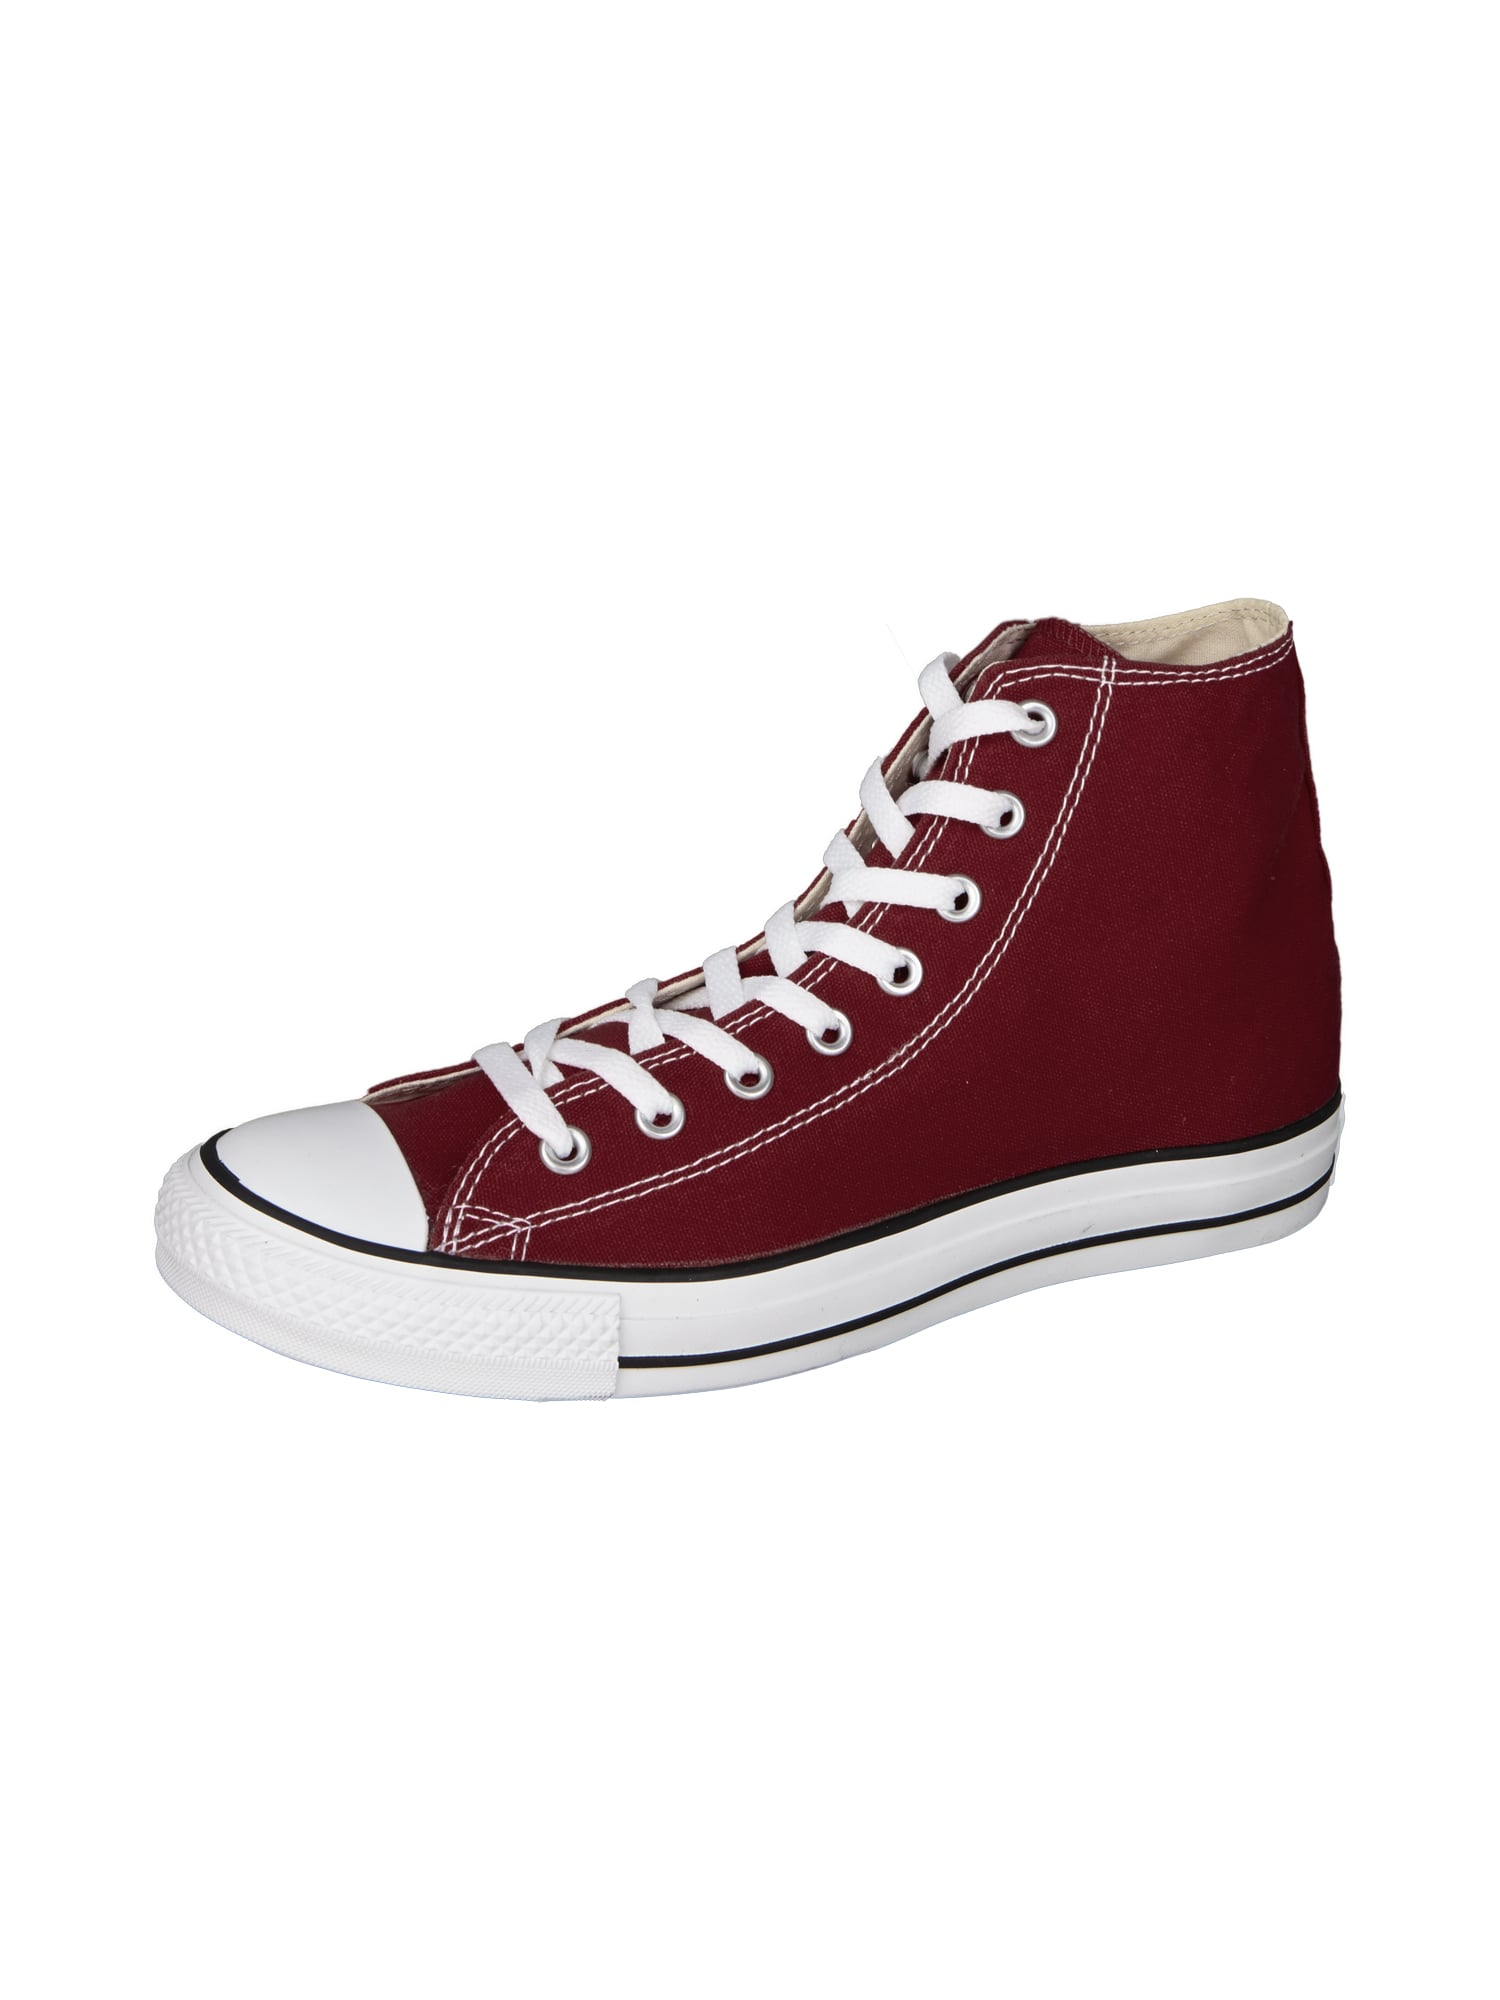 converse chucks mit logoprint in rot online kaufen 9004506 p c online shop sterreich. Black Bedroom Furniture Sets. Home Design Ideas